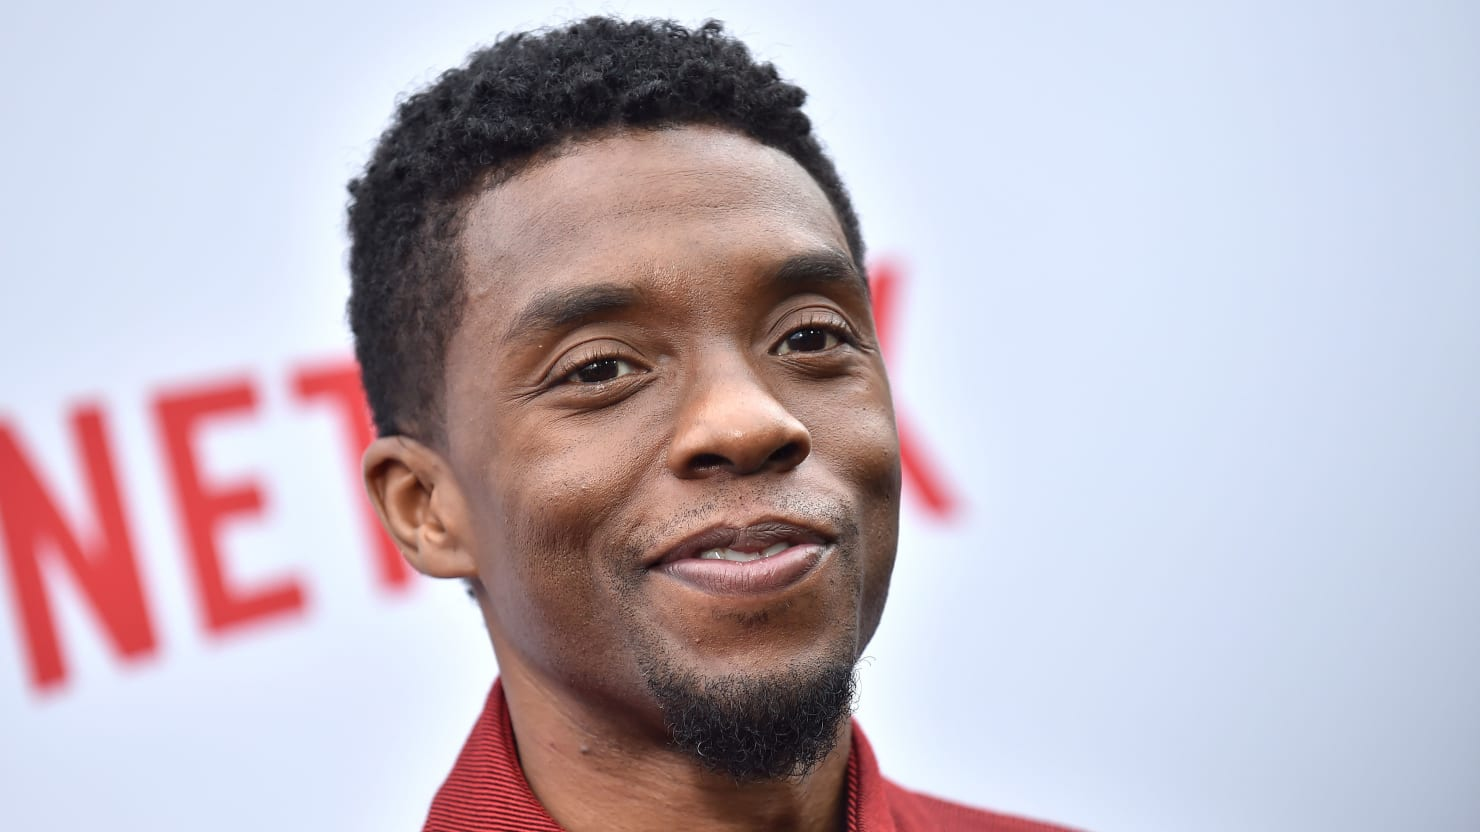 Chadwick Boseman Kept His Eyes on a Greater Mission. I Can't Think of a More Generous Act.